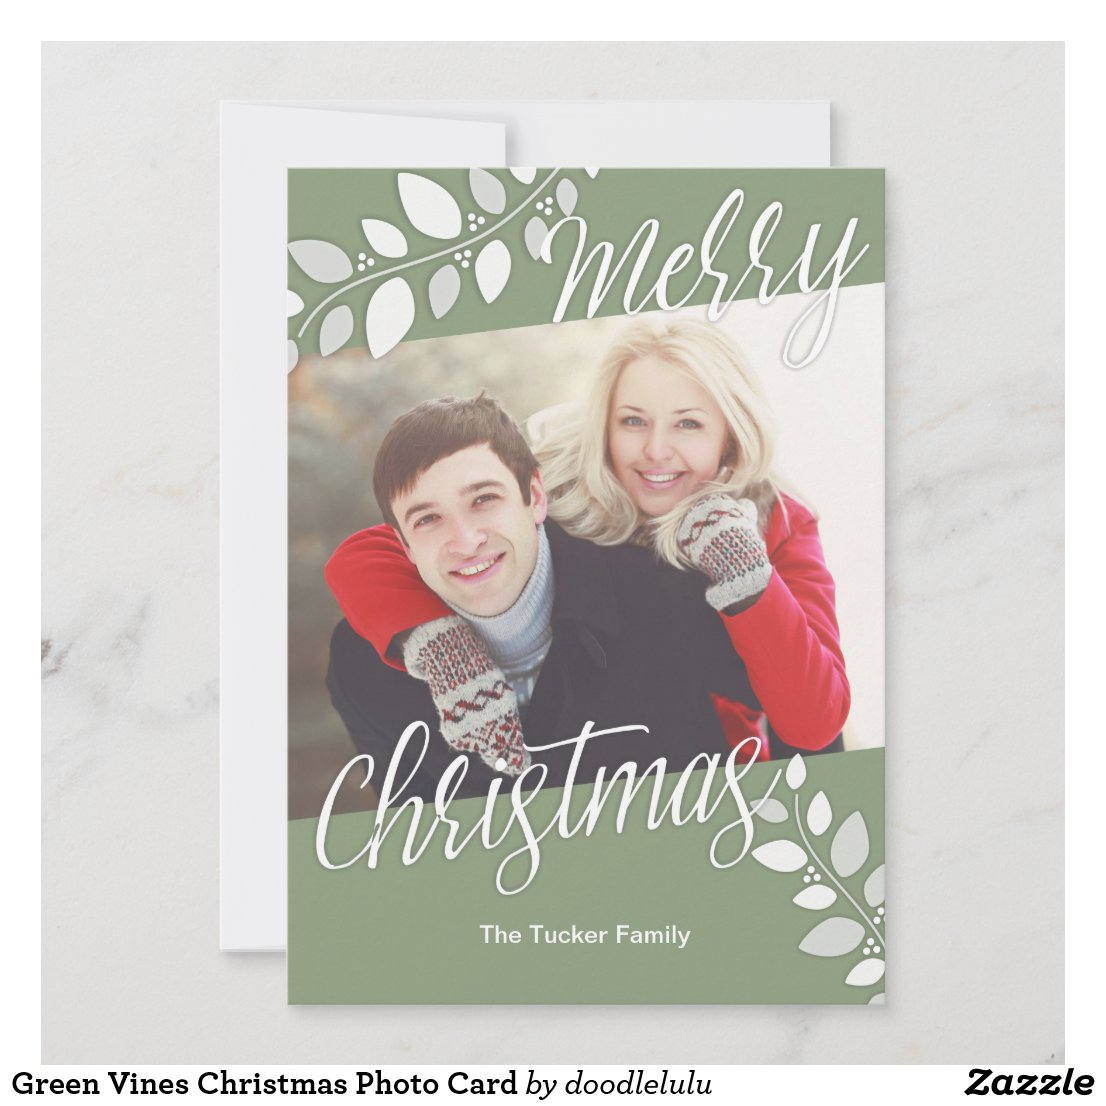 Green Vines Christmas Photo Card